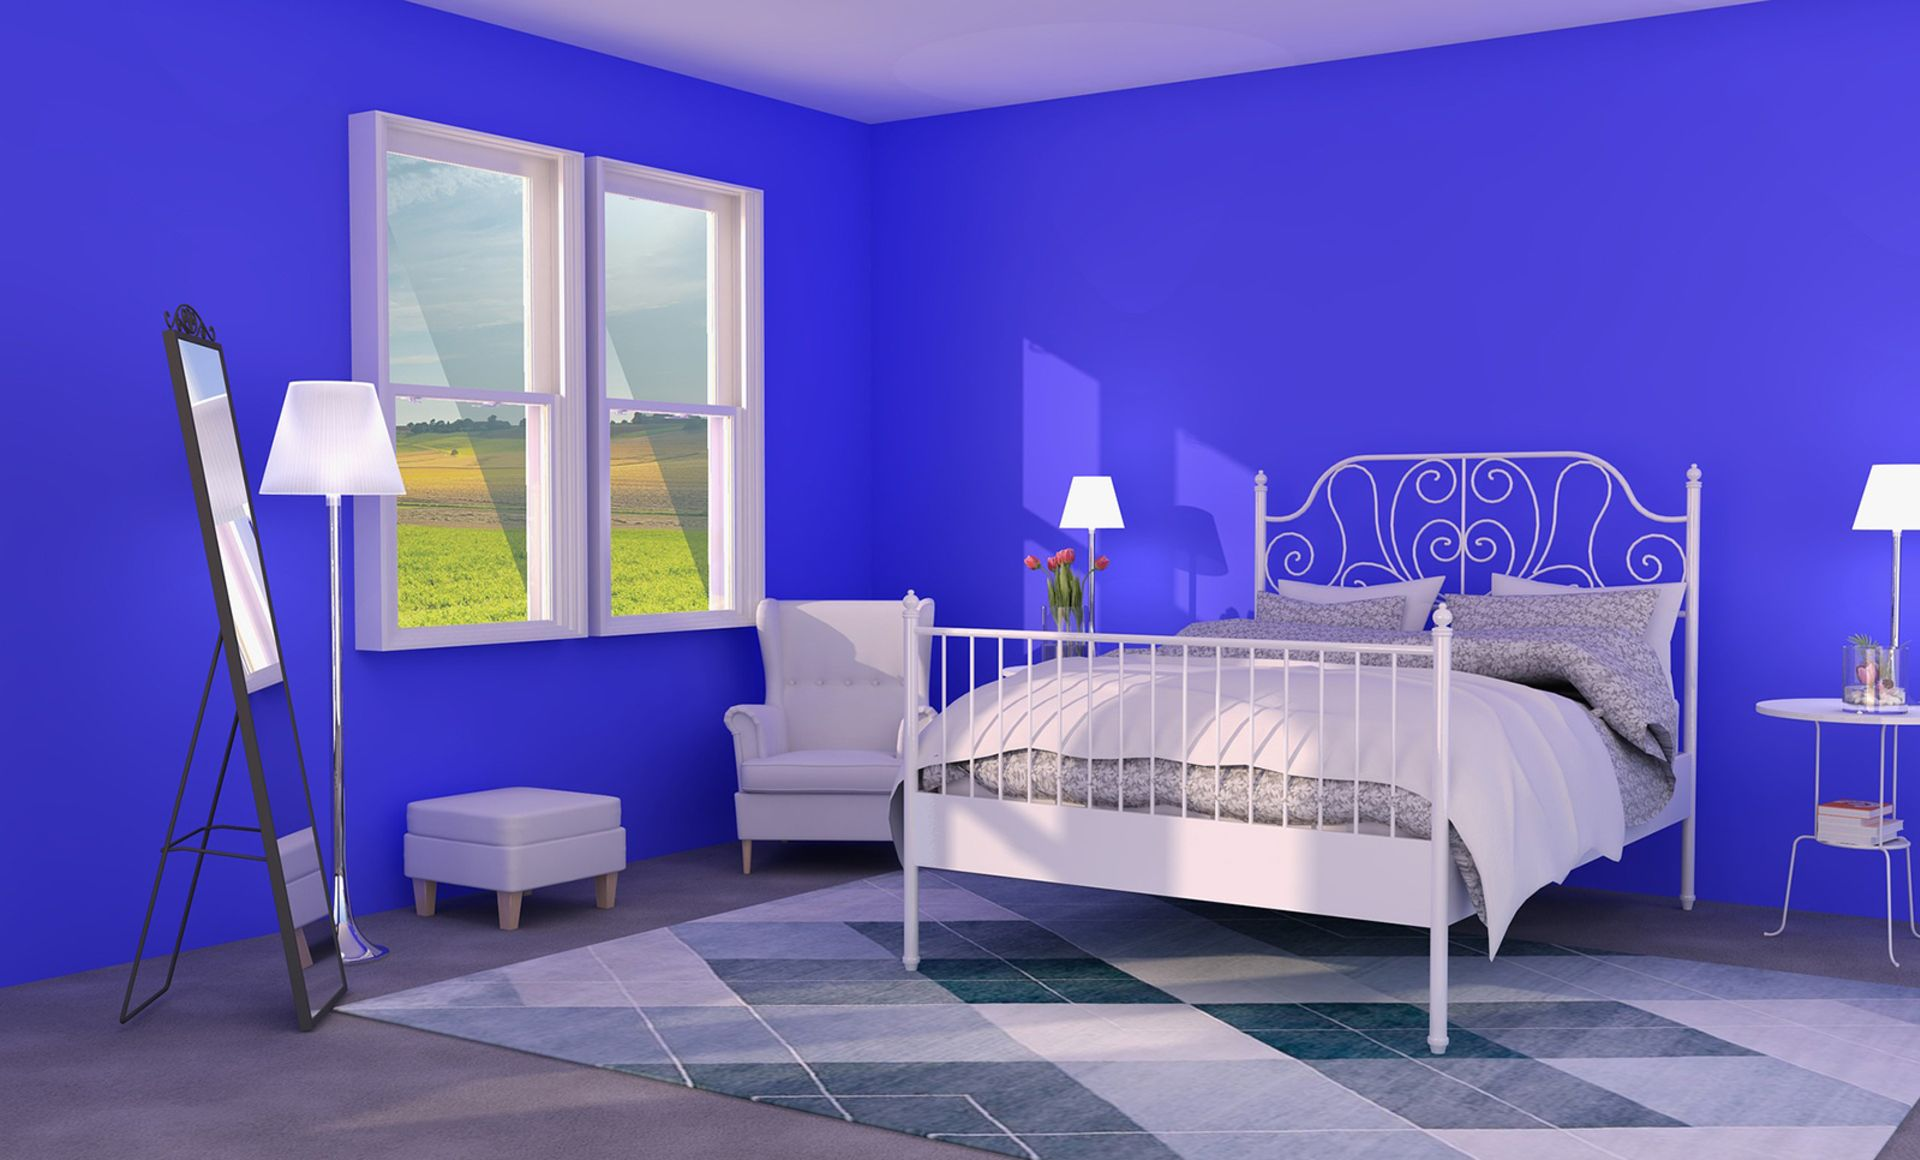 Real Estate Tip for Sellers: Choose Neutral Colors